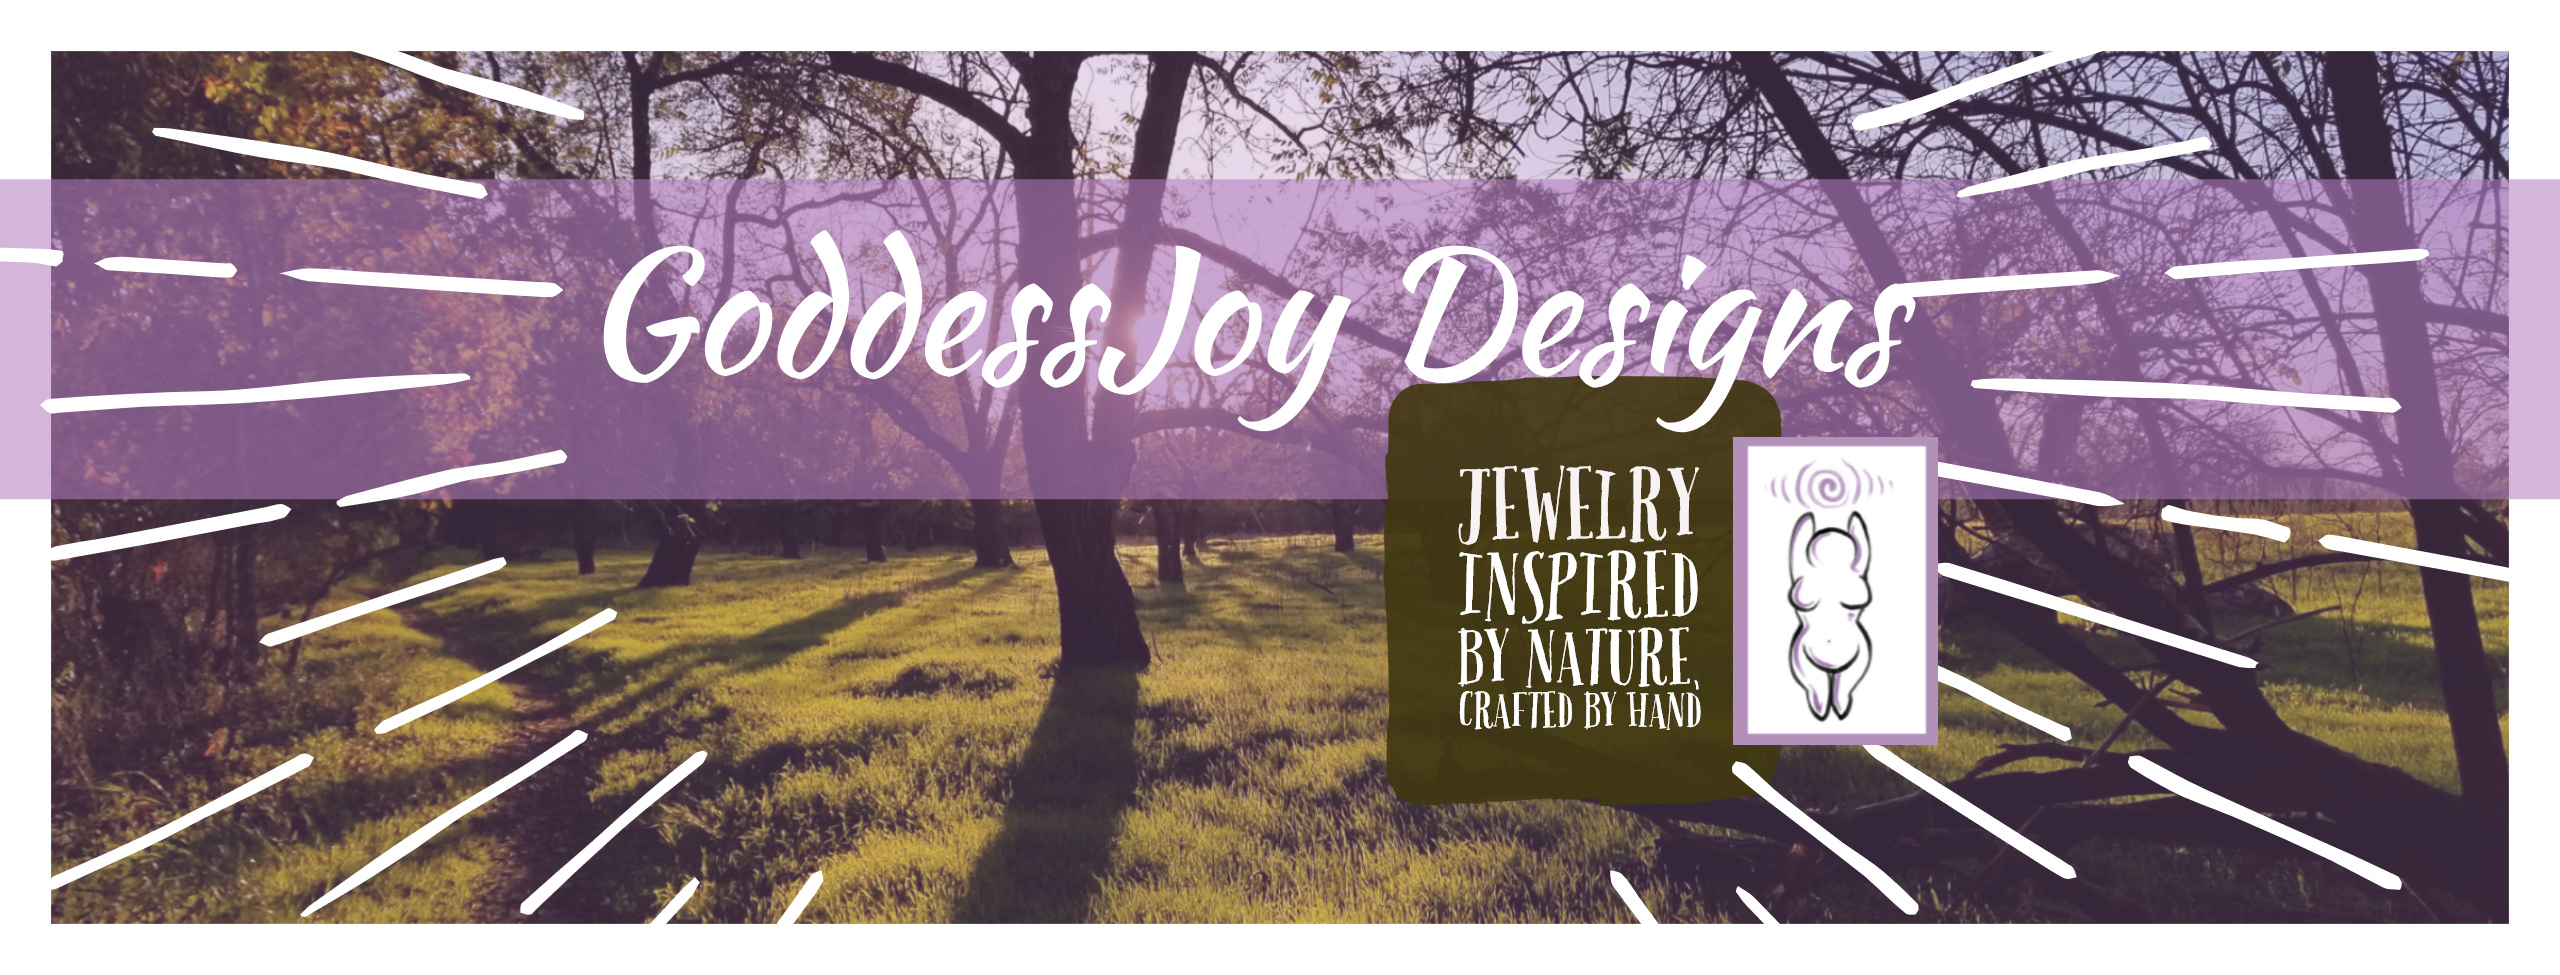 GoddessJoy Designs Jewelry Inspired by Nature Crafted by Hand